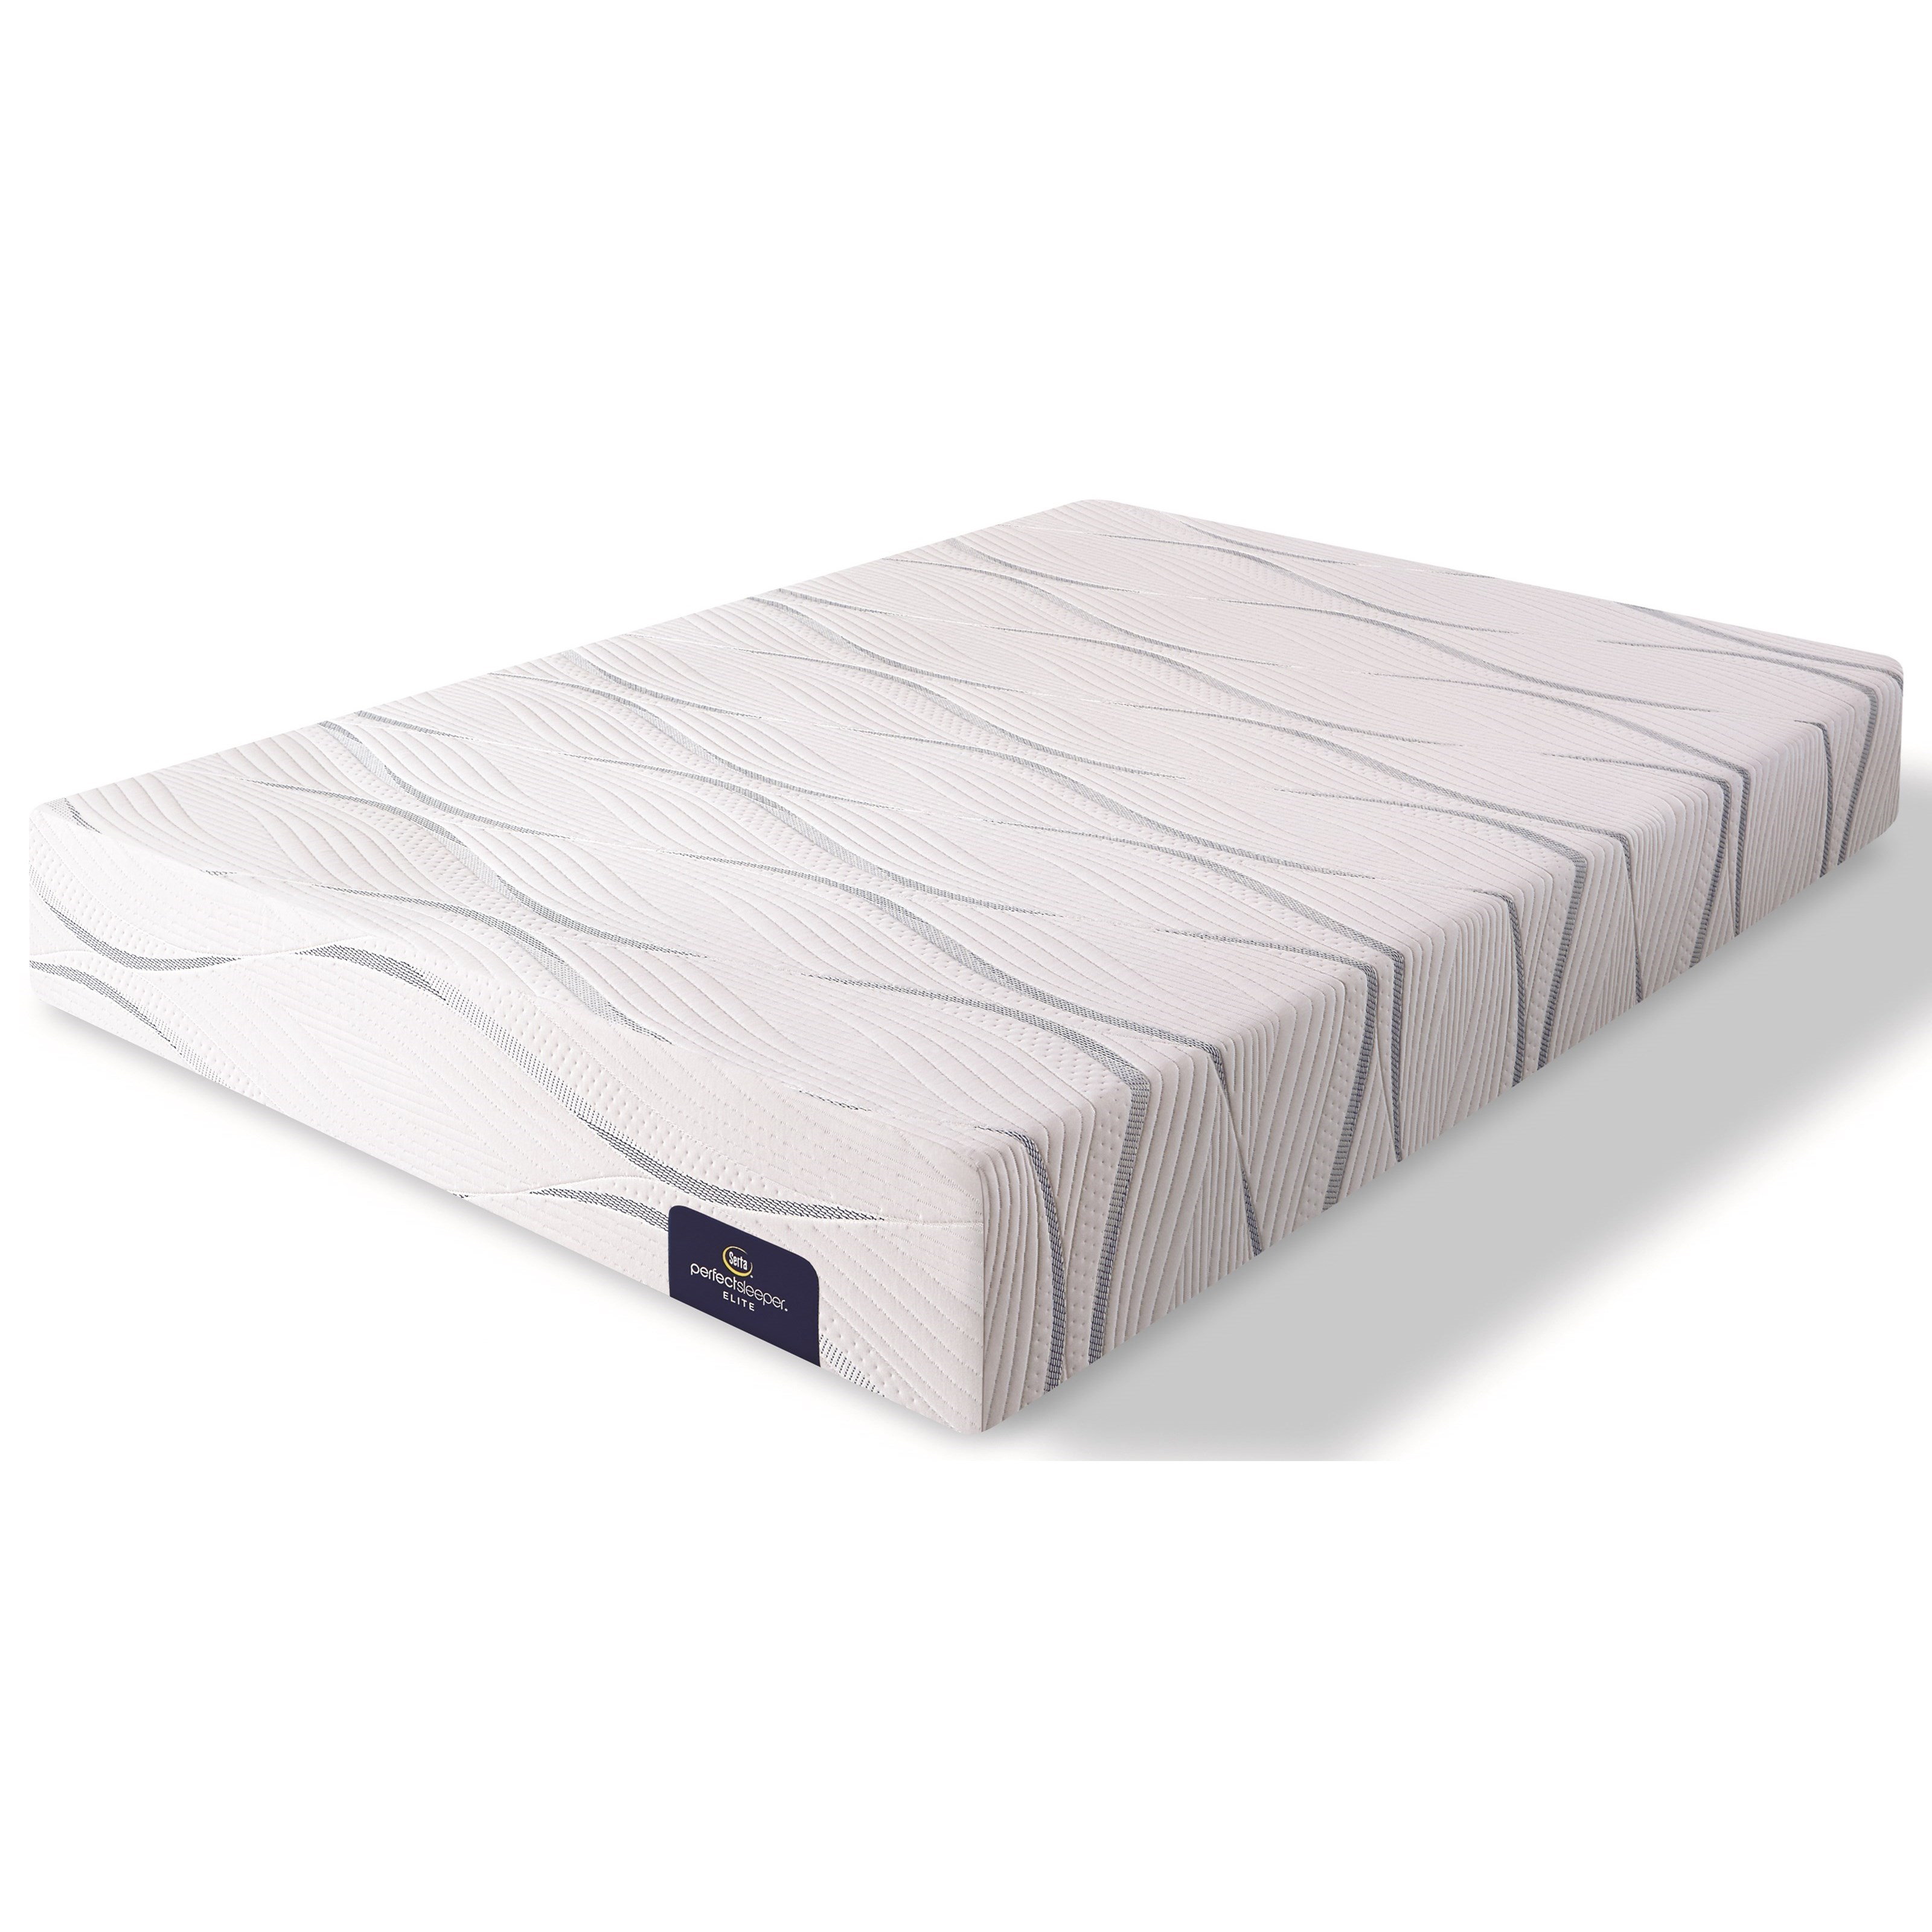 Queen Firm Gel Memory Foam Mattress